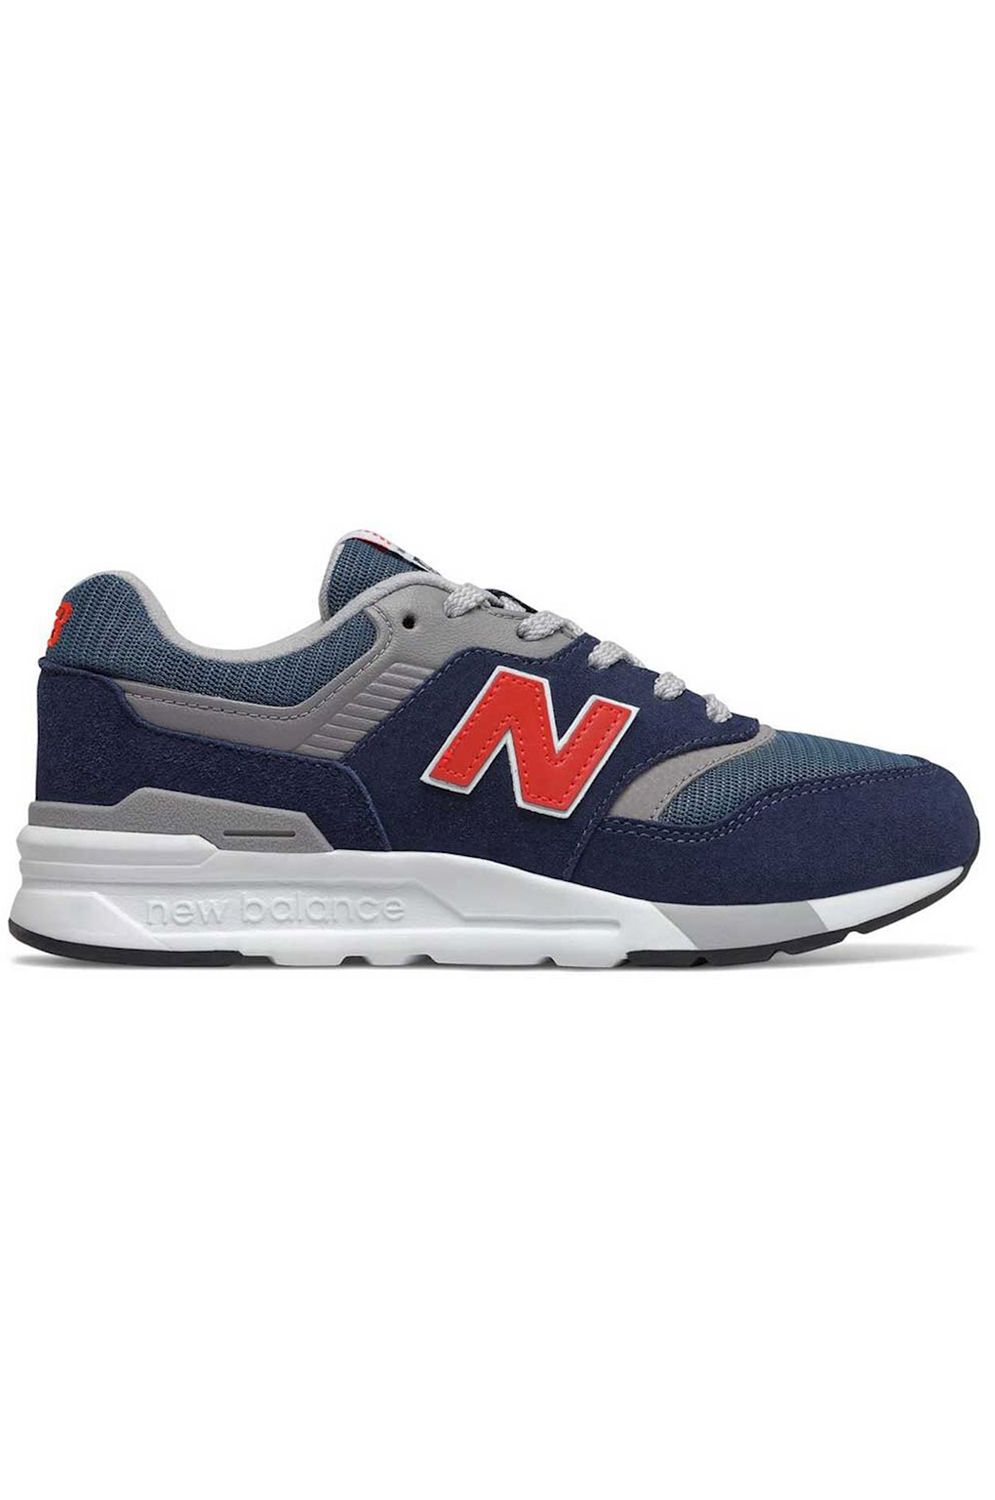 New Balance Shoes 997 CLASSIC KIDS Navy